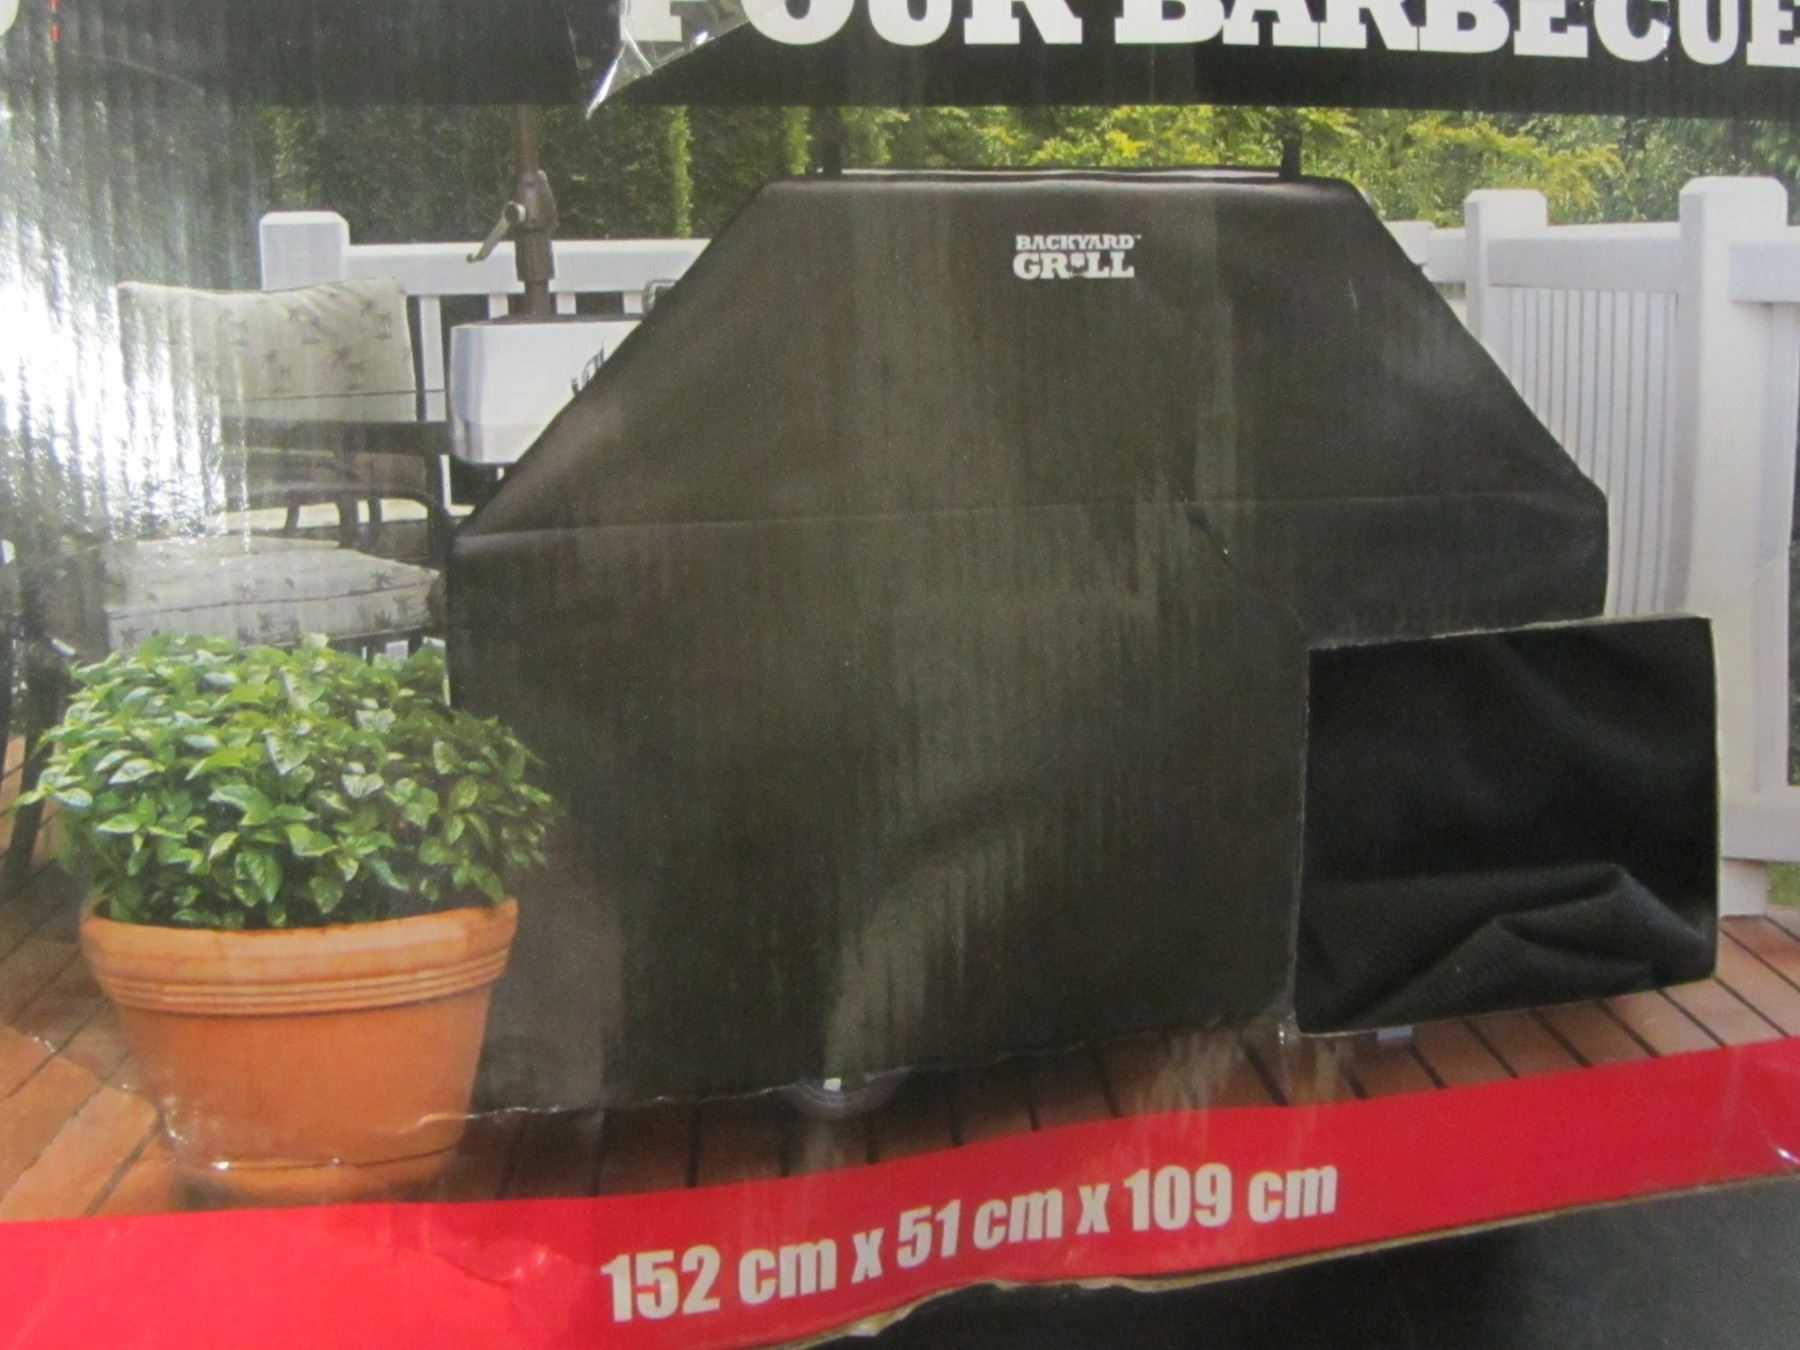 Image 1 : Backyard Grill BBQ Cover / 3 4 Burner   60inch X 20